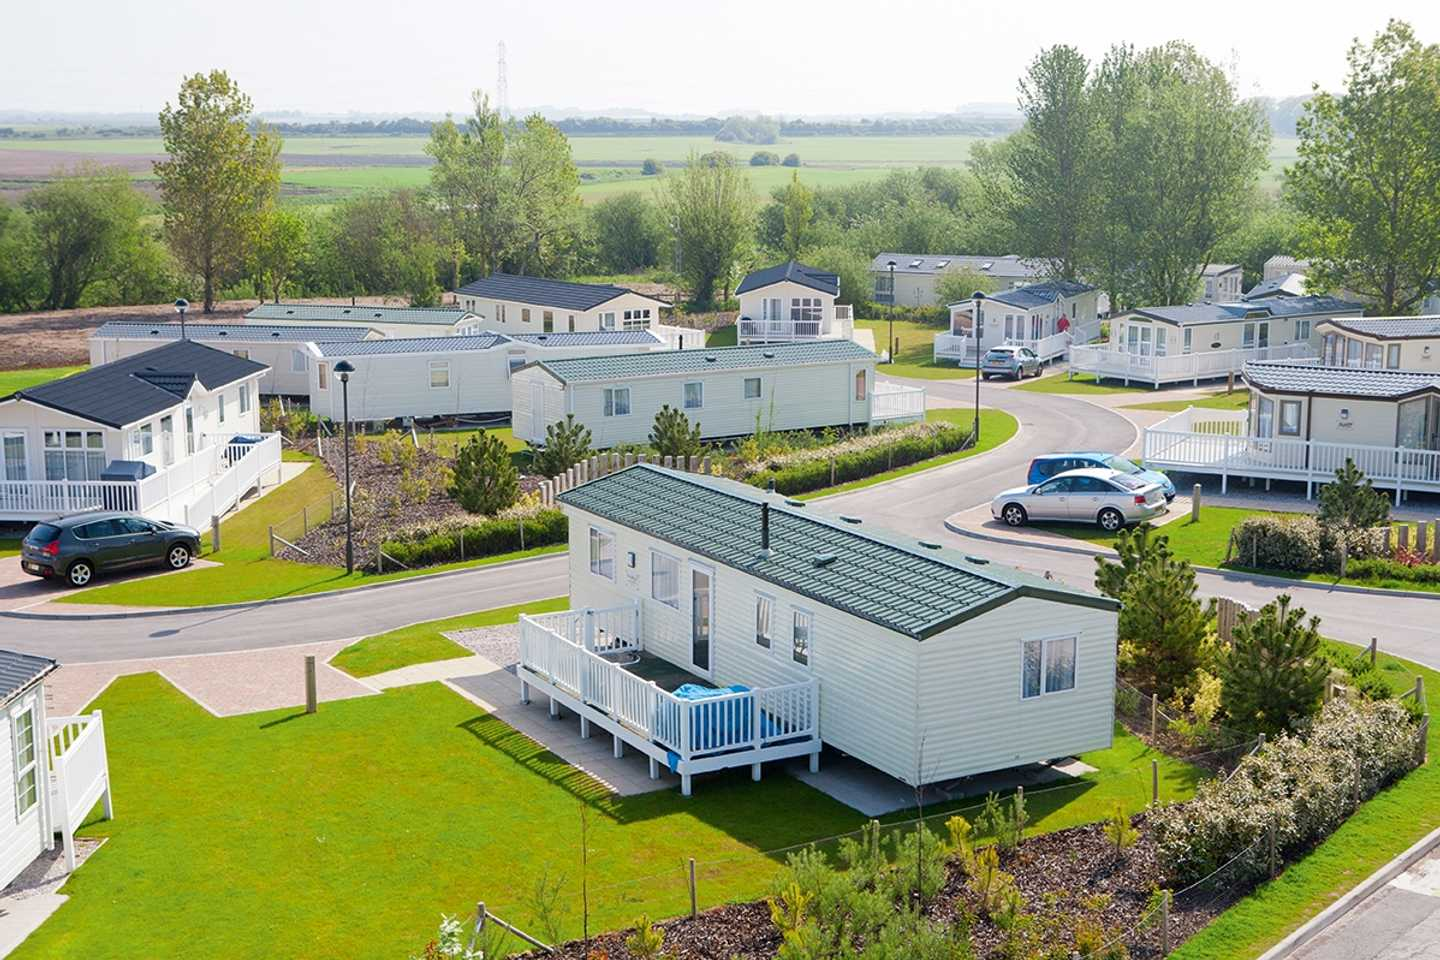 View of the caravans on the park